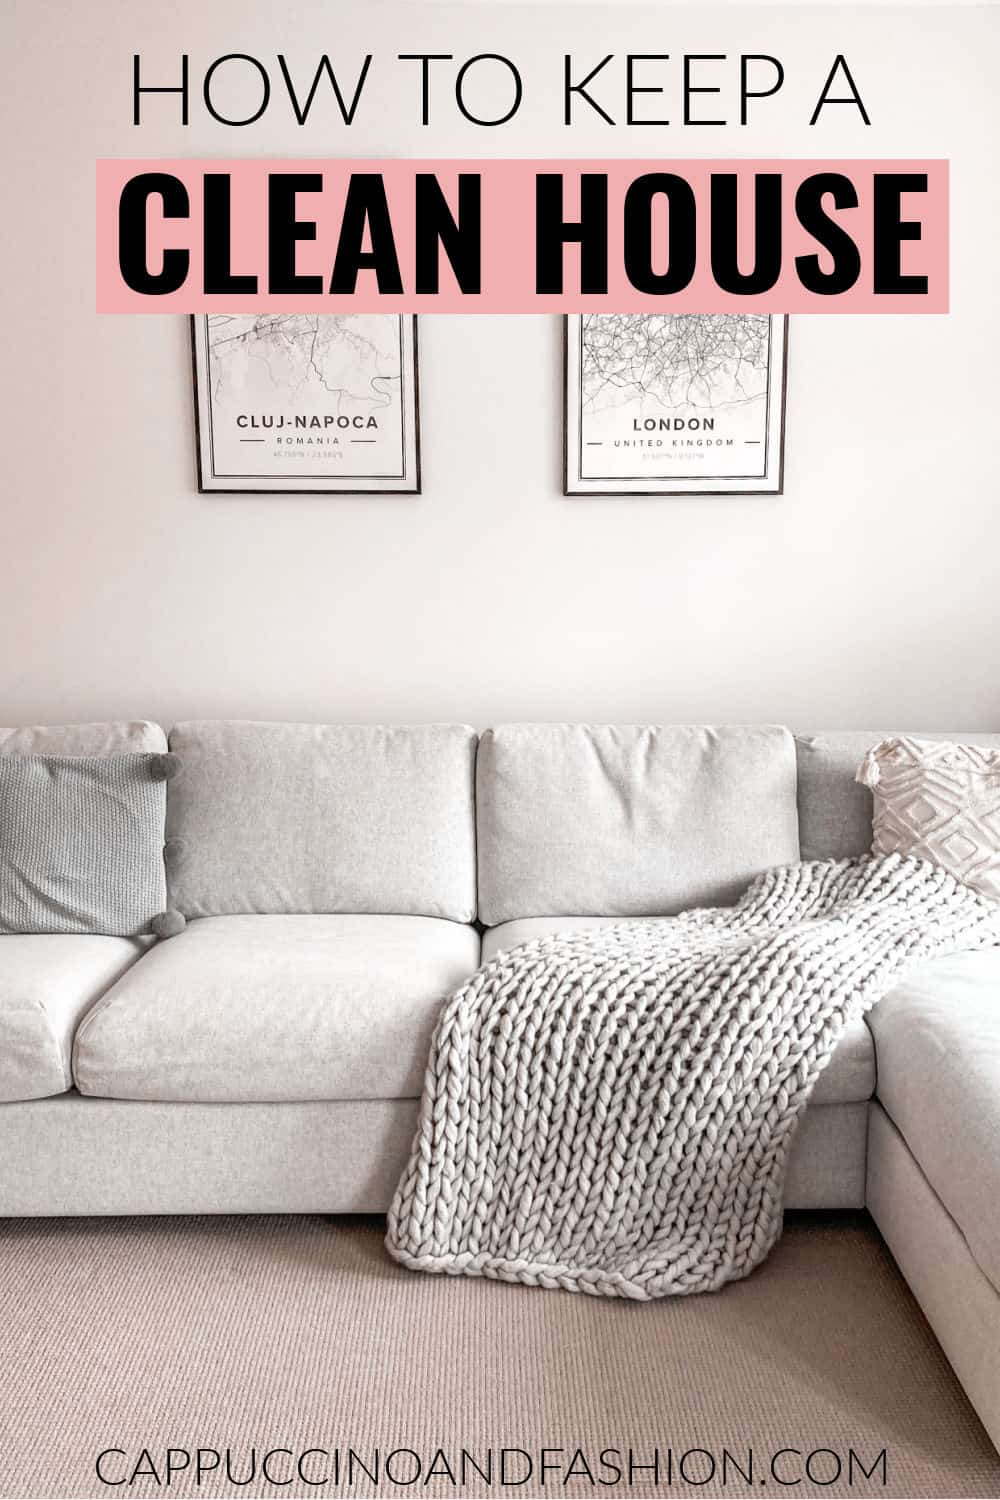 How to keep a clean house with these easy habits